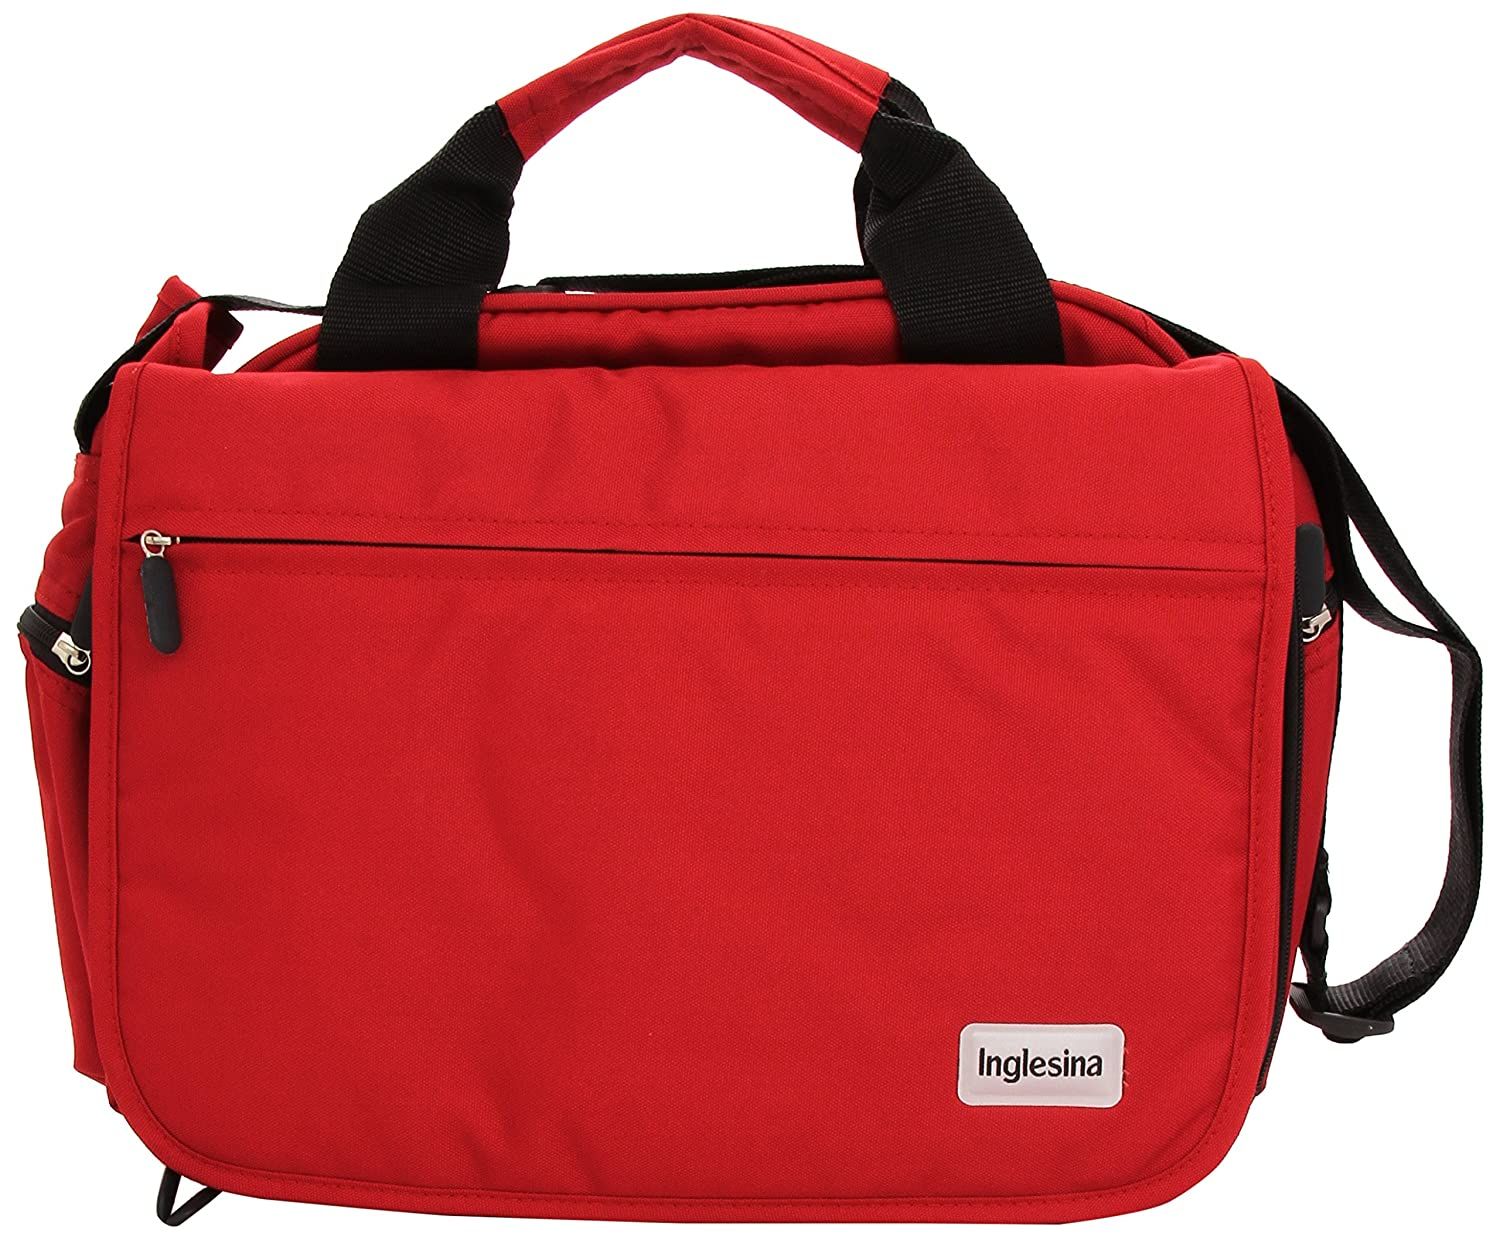 Inglesina My Baby Sac Rouge AX90D0RED